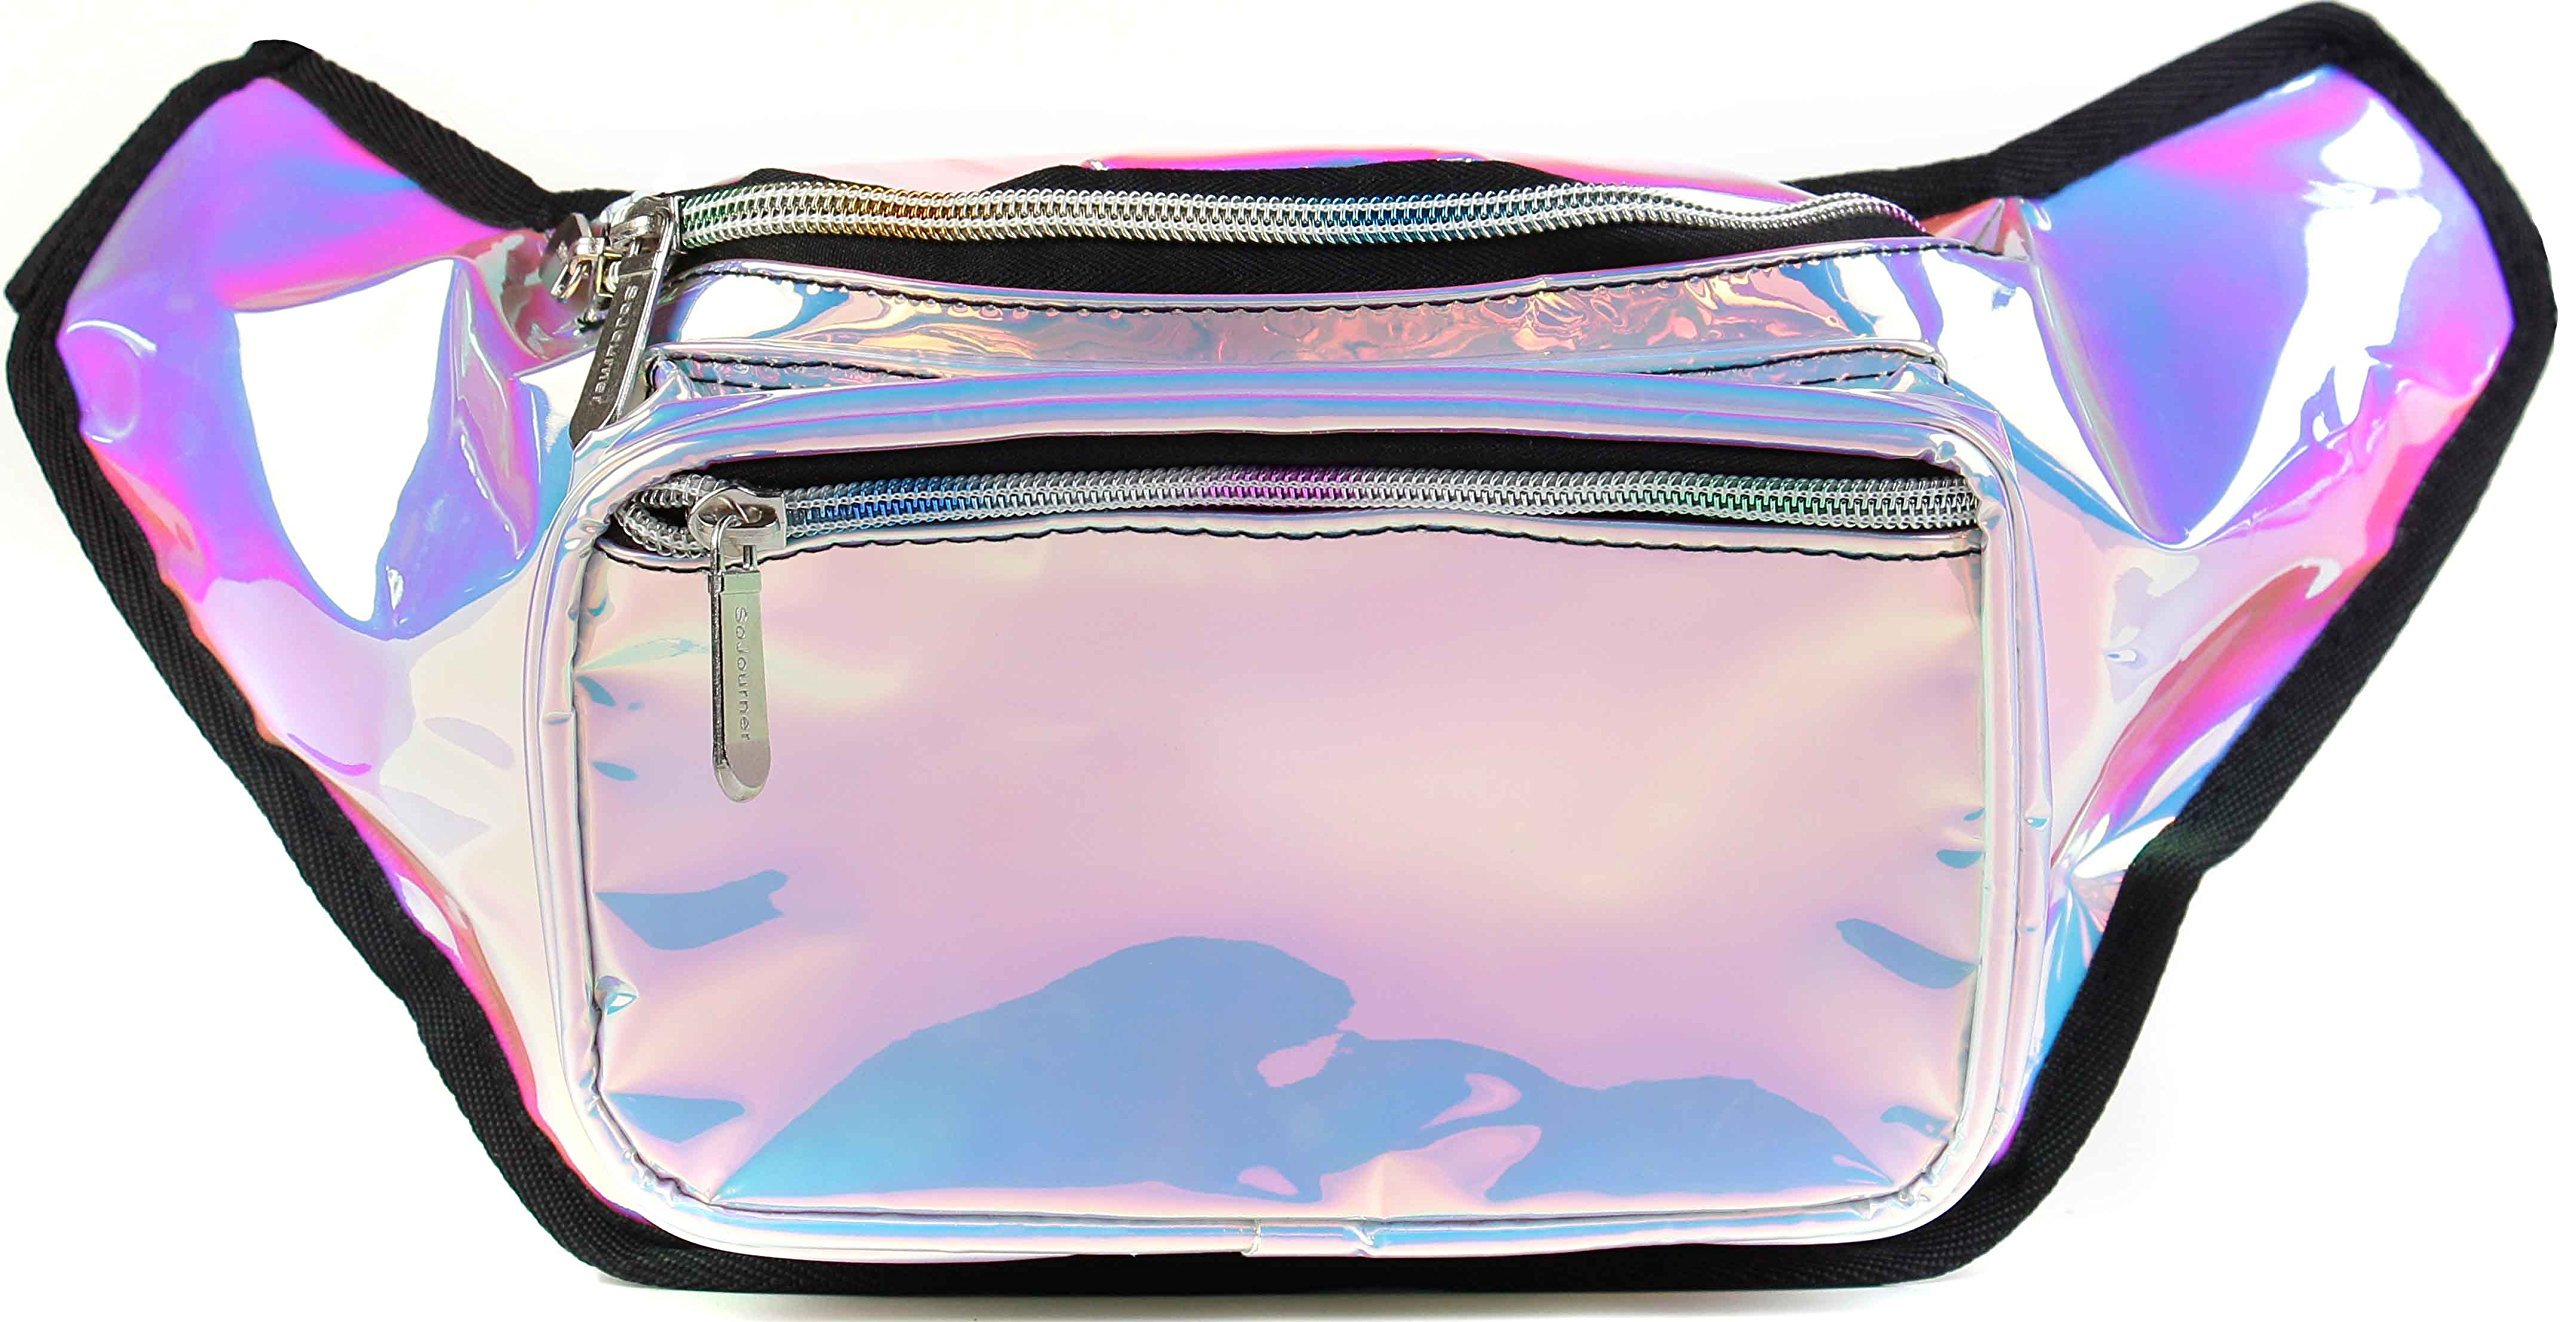 SoJourner Holographic Rave Fanny Pack - Packs for festival women, men | Cute Fashion Waist Bag Belt Bags (Luminous Pink & Blue)